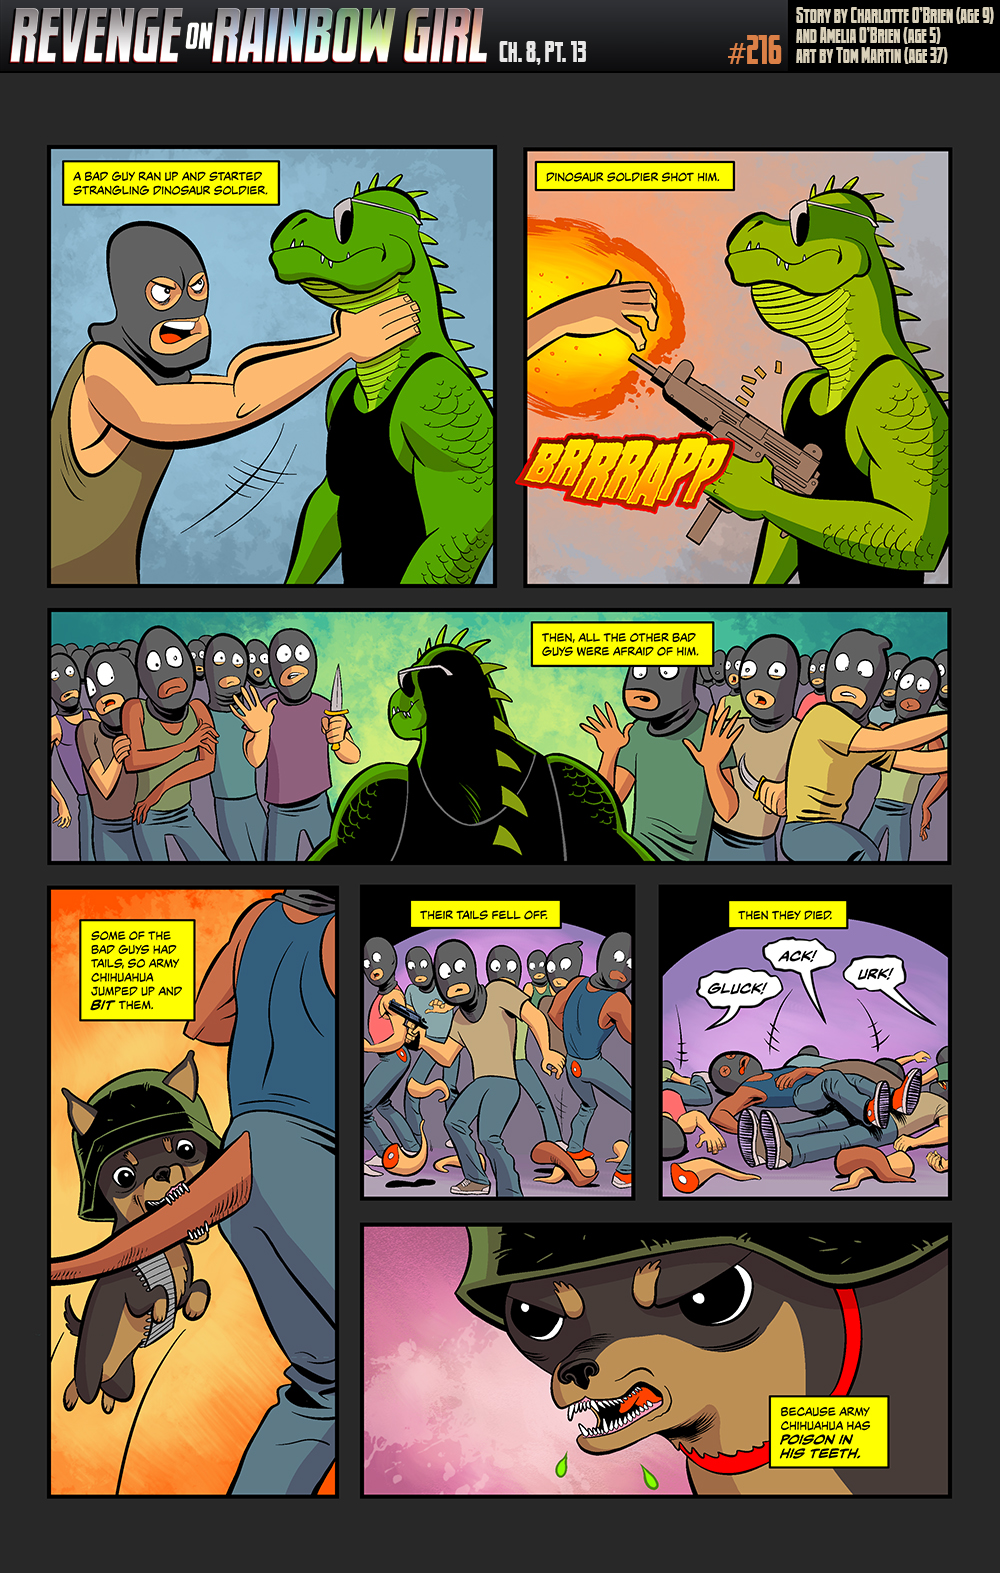 Page 216 – Some bad guys have tails